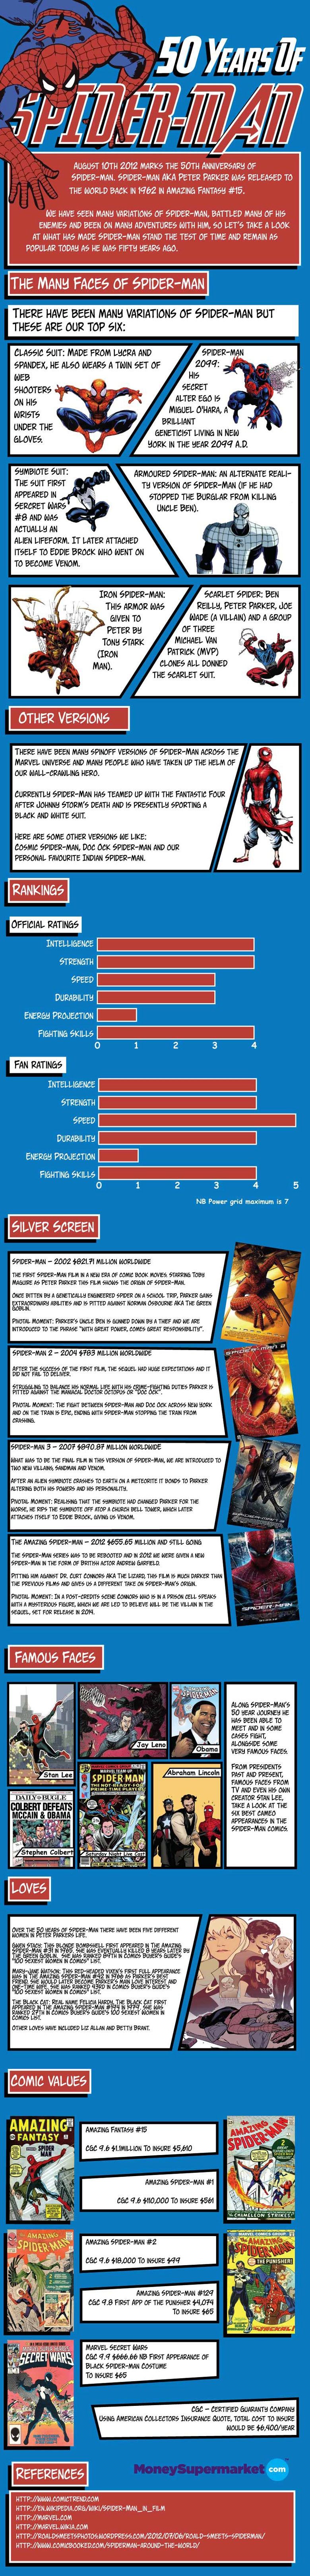 Spiderman-Infographic